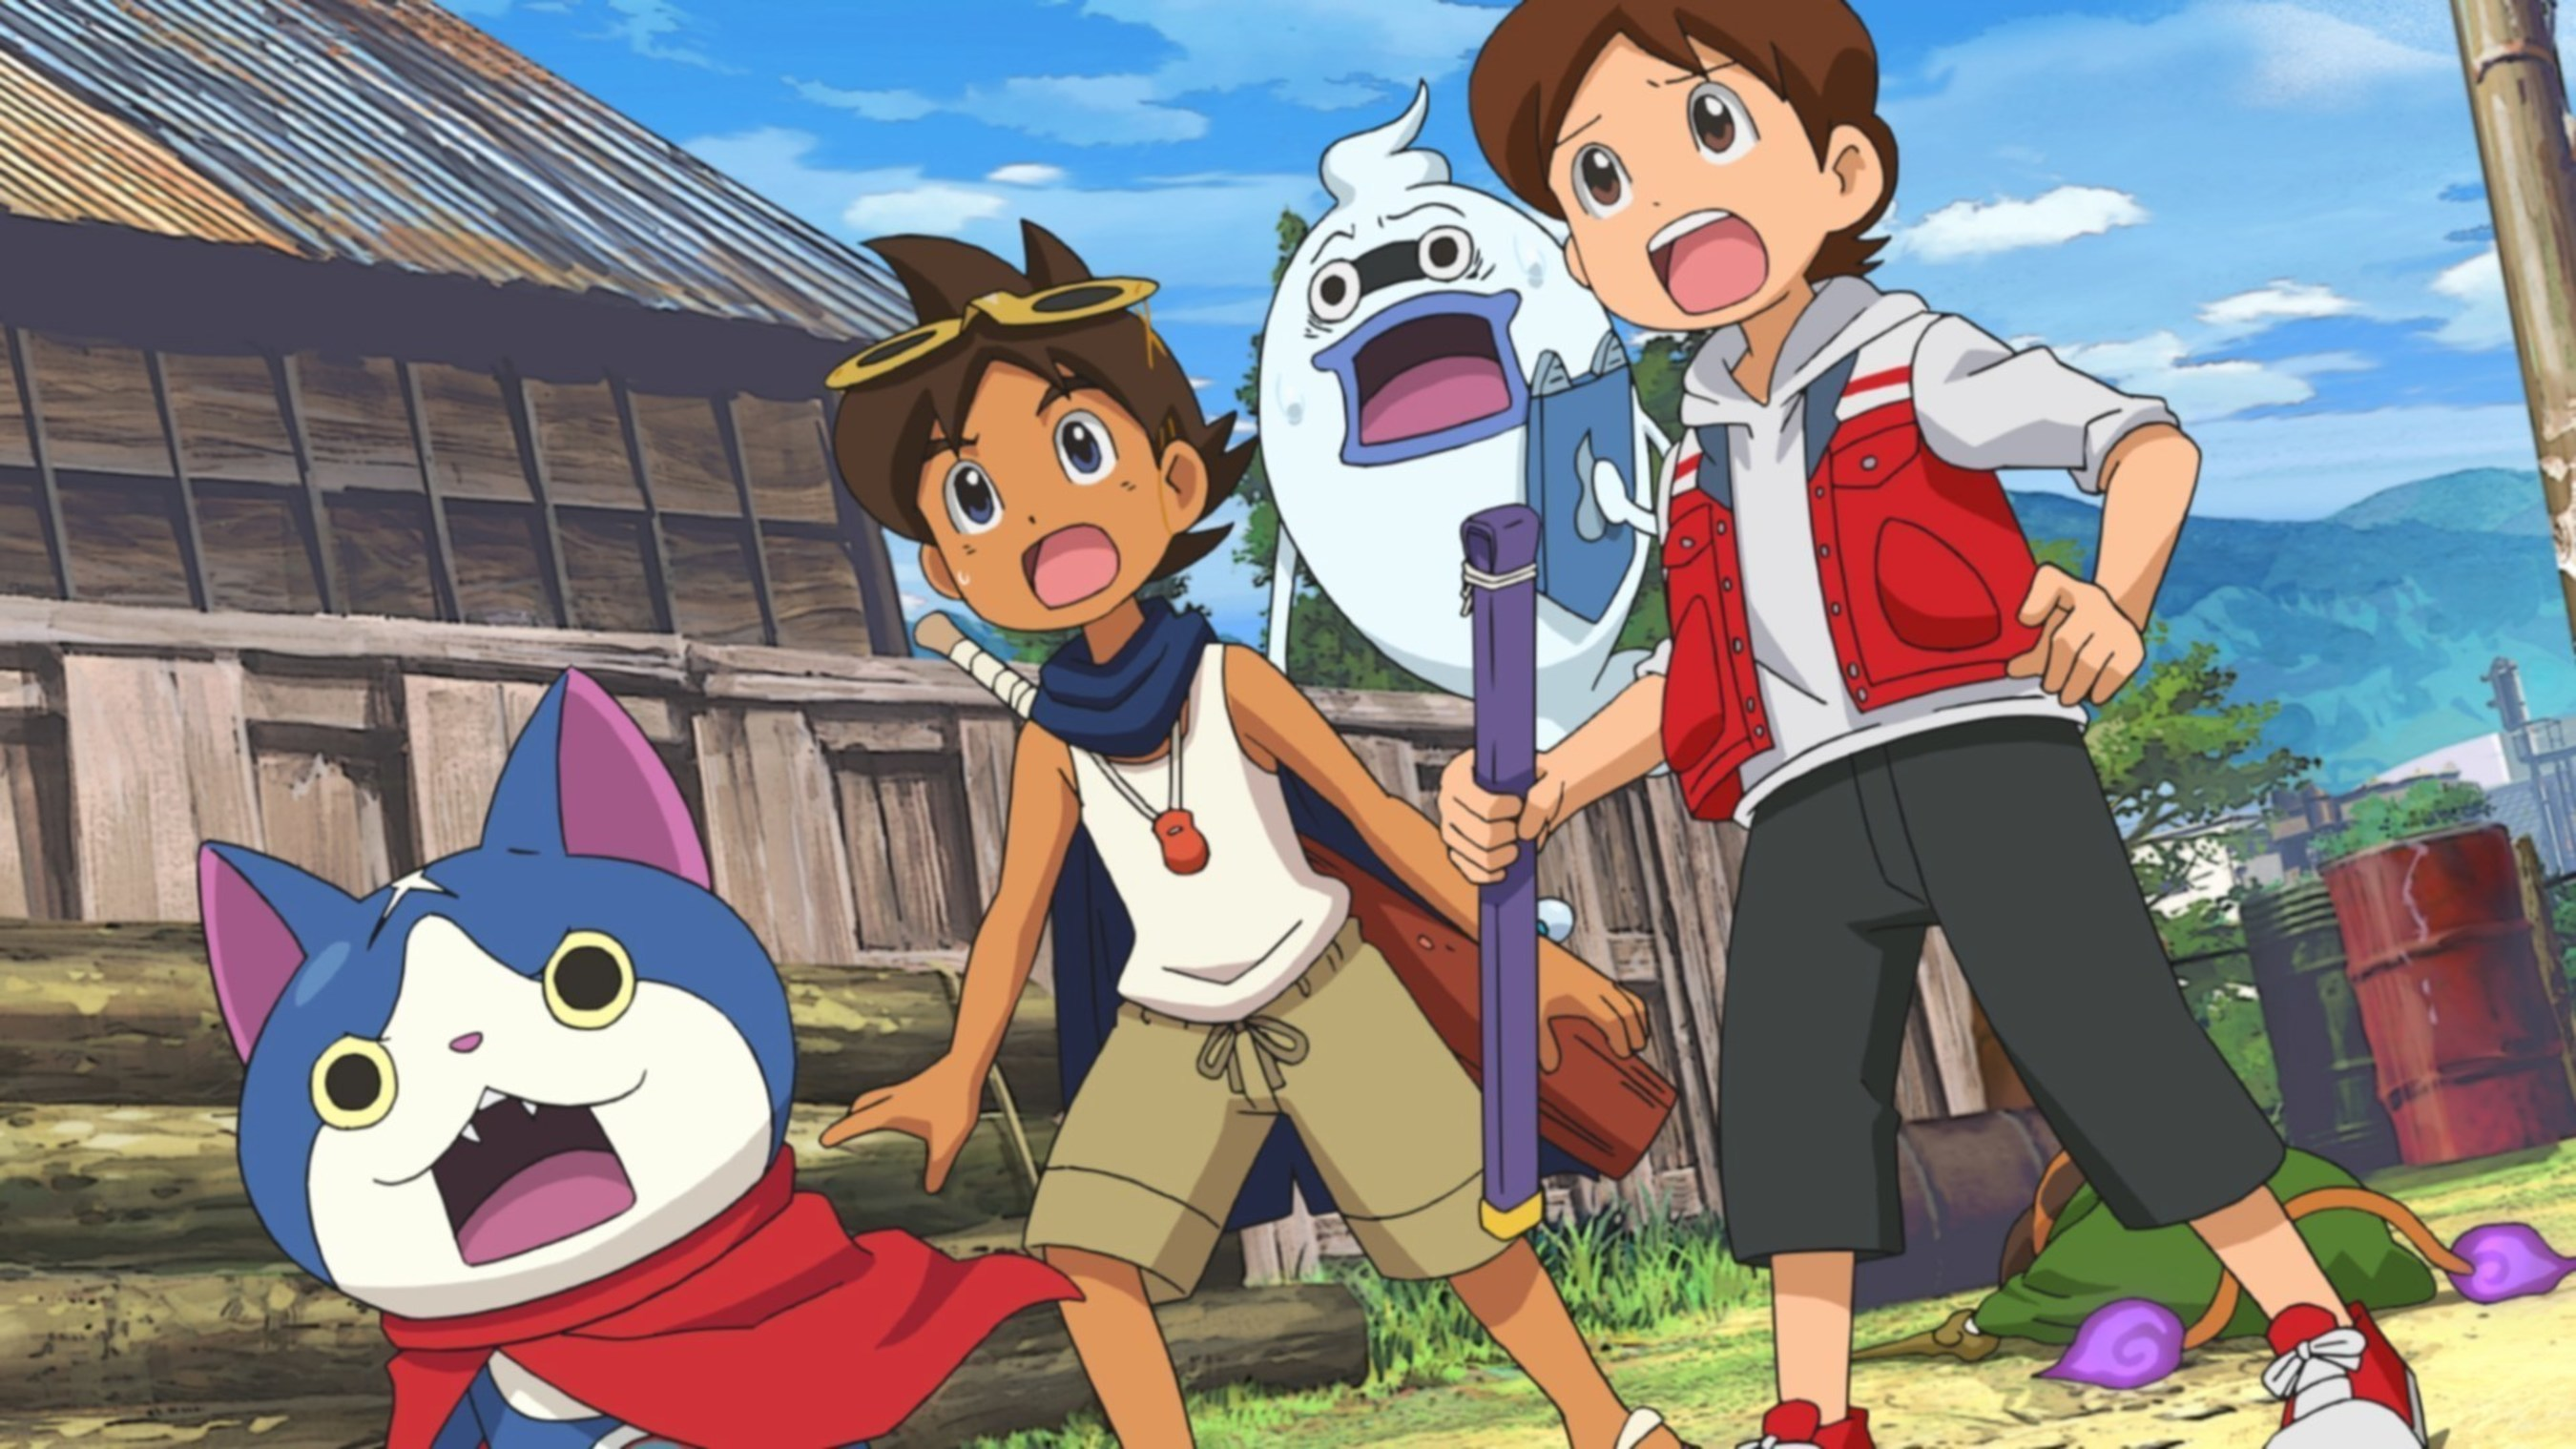 (from left) Hovernyan, Nathaniel, Whisper and Nate - who have traveled back in time - are preparing to fight evil.